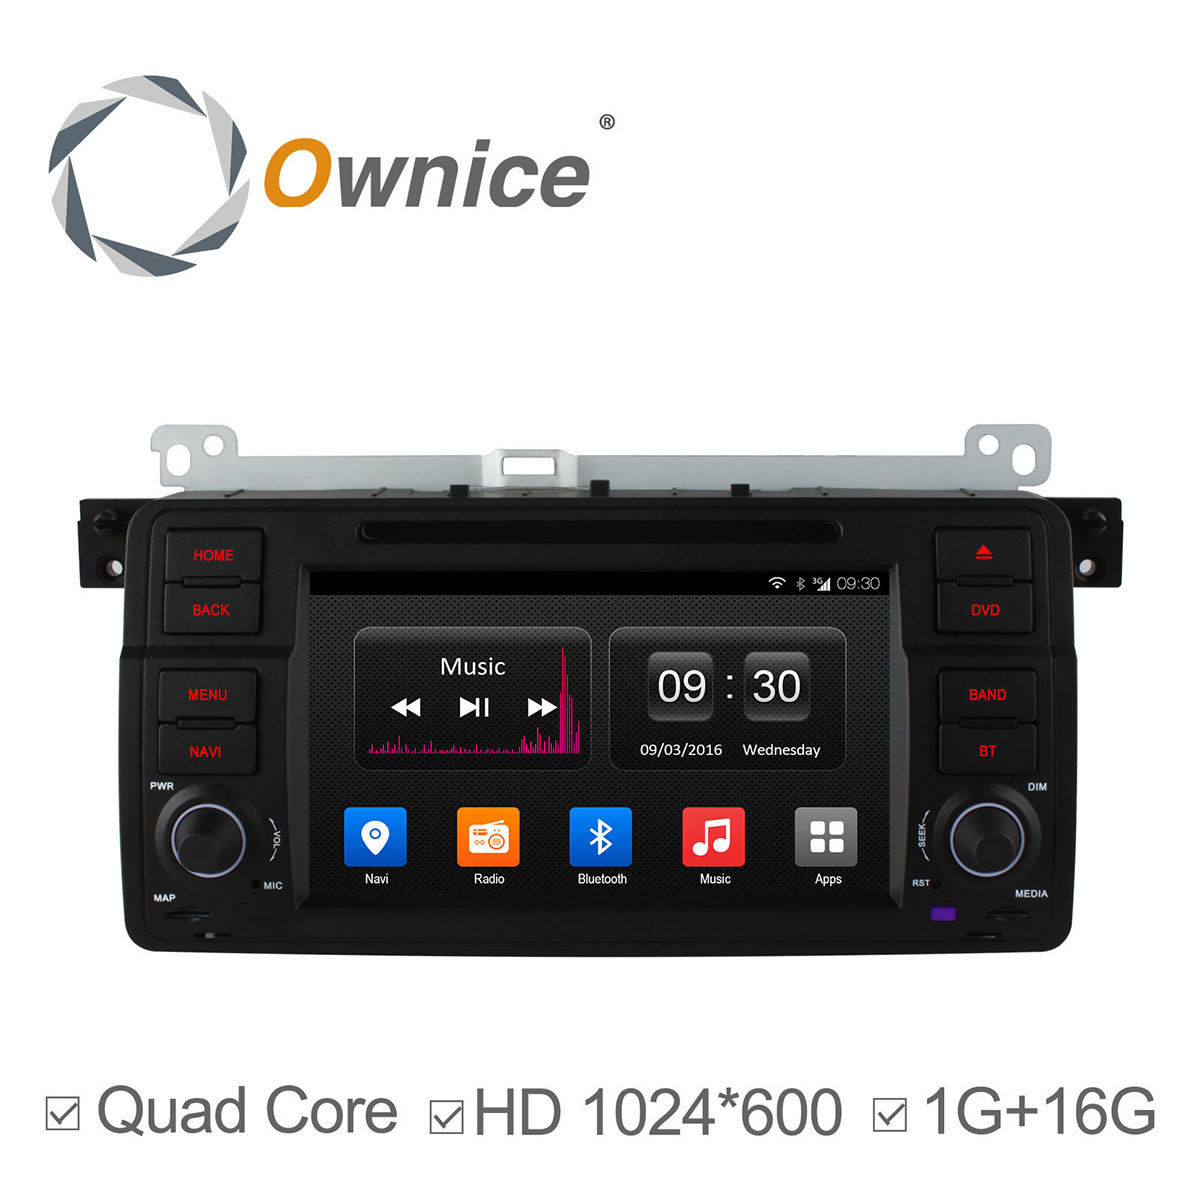 """Quad Core 7"""" Android 4.4 Car DVD Player For BMW E46 M3 MG ZT Rover 75 Wifi Support DAB+ GPS BT Radio stereo TPMS DVR mirror link(China (Mainland))"""